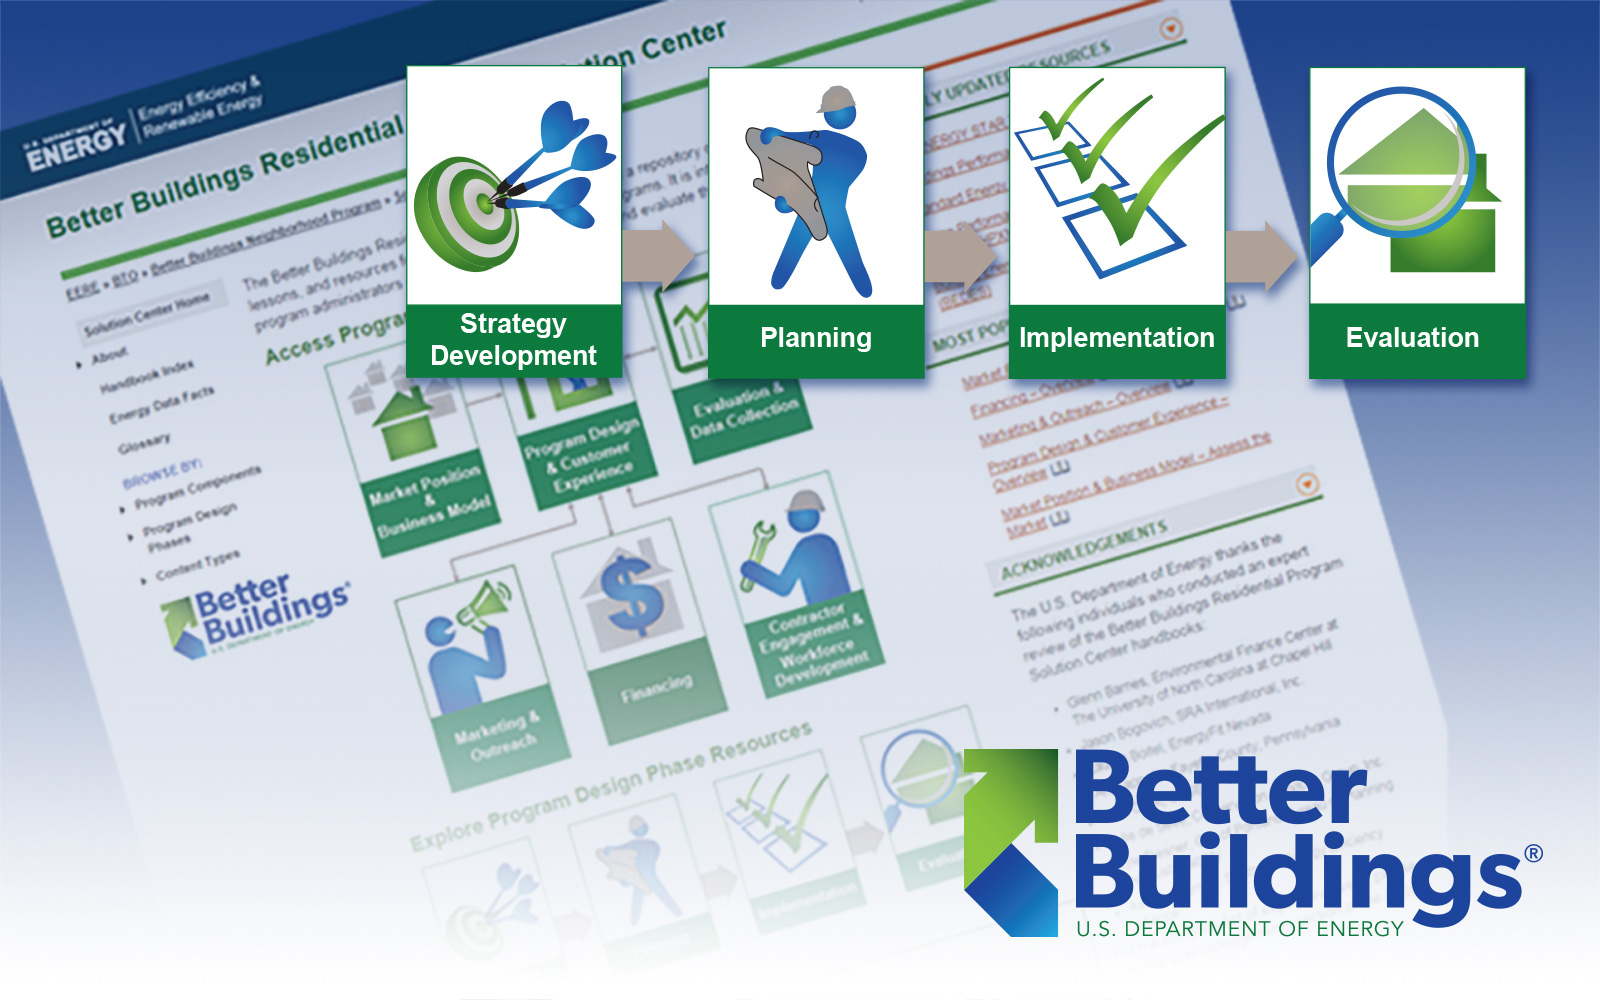 Screenshot of DOE Better Buildings publication with four icons in the foreground for Strategy Development, Planning, Implementation, and Evaluation